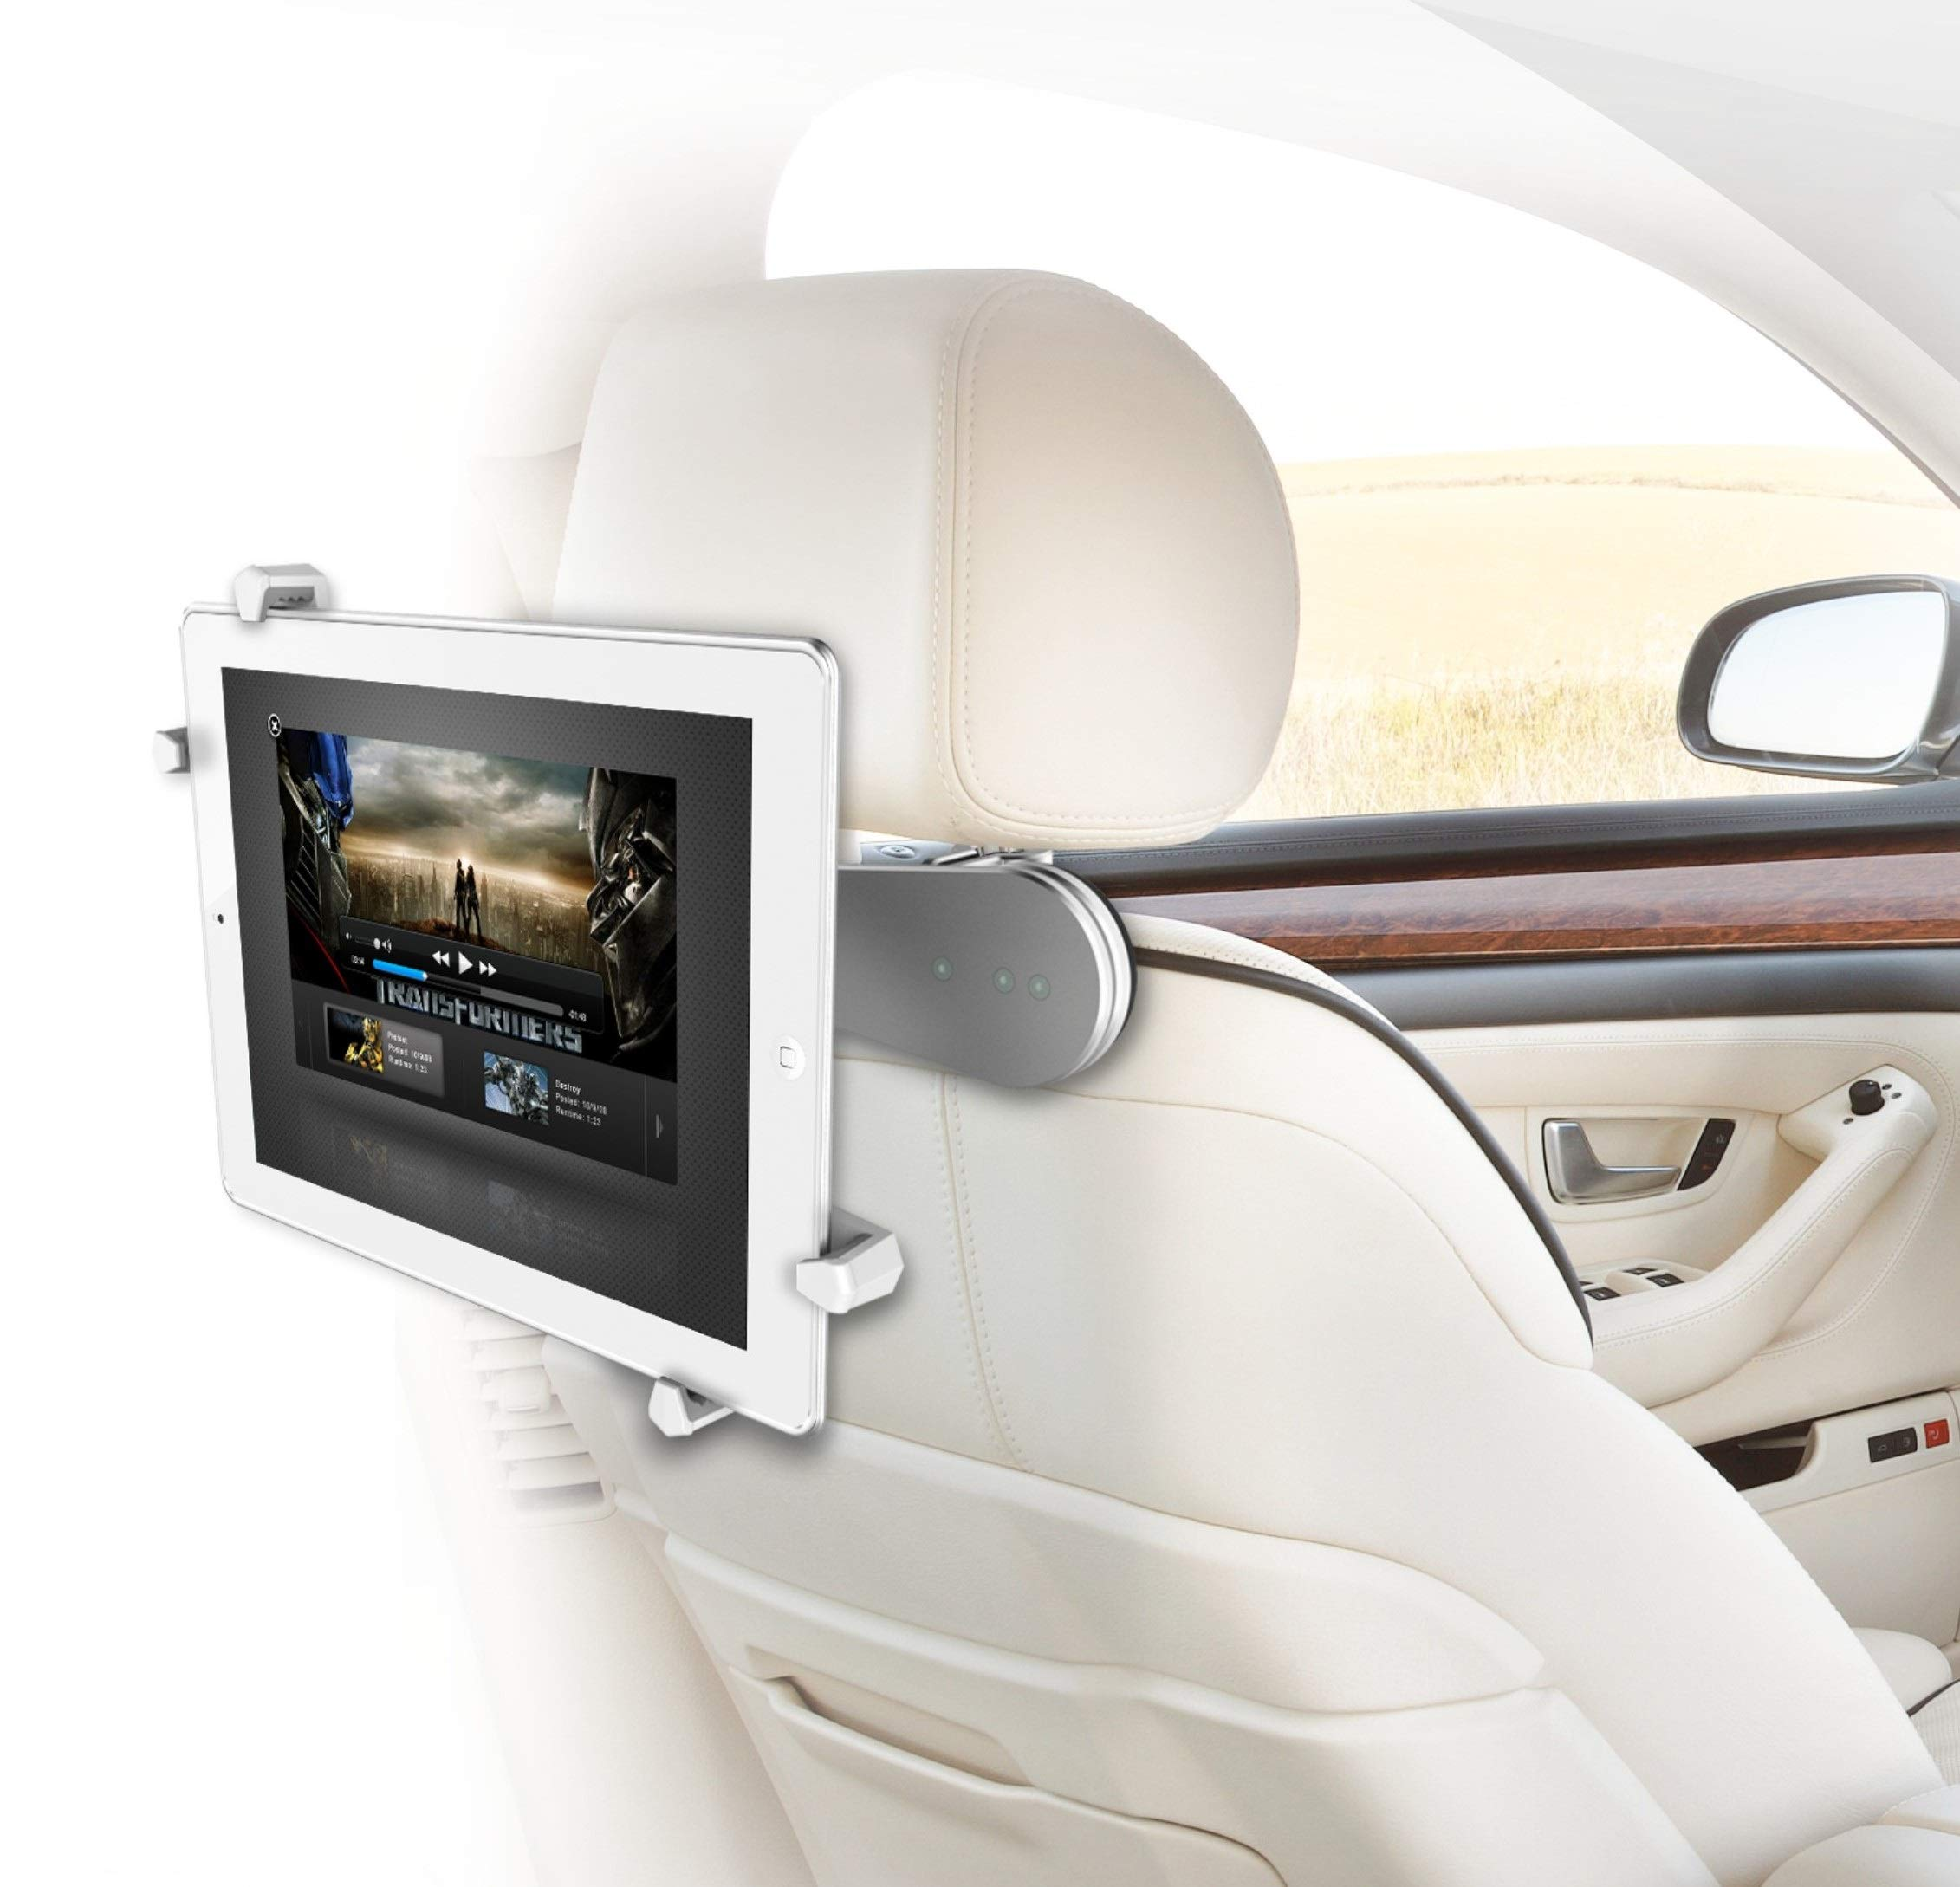 ZAZZ Tablet Holder for car, Flexible Mount (Aluminium), Swivel Between headrests,Compatible with iPad/Kindle Fire and Tablets